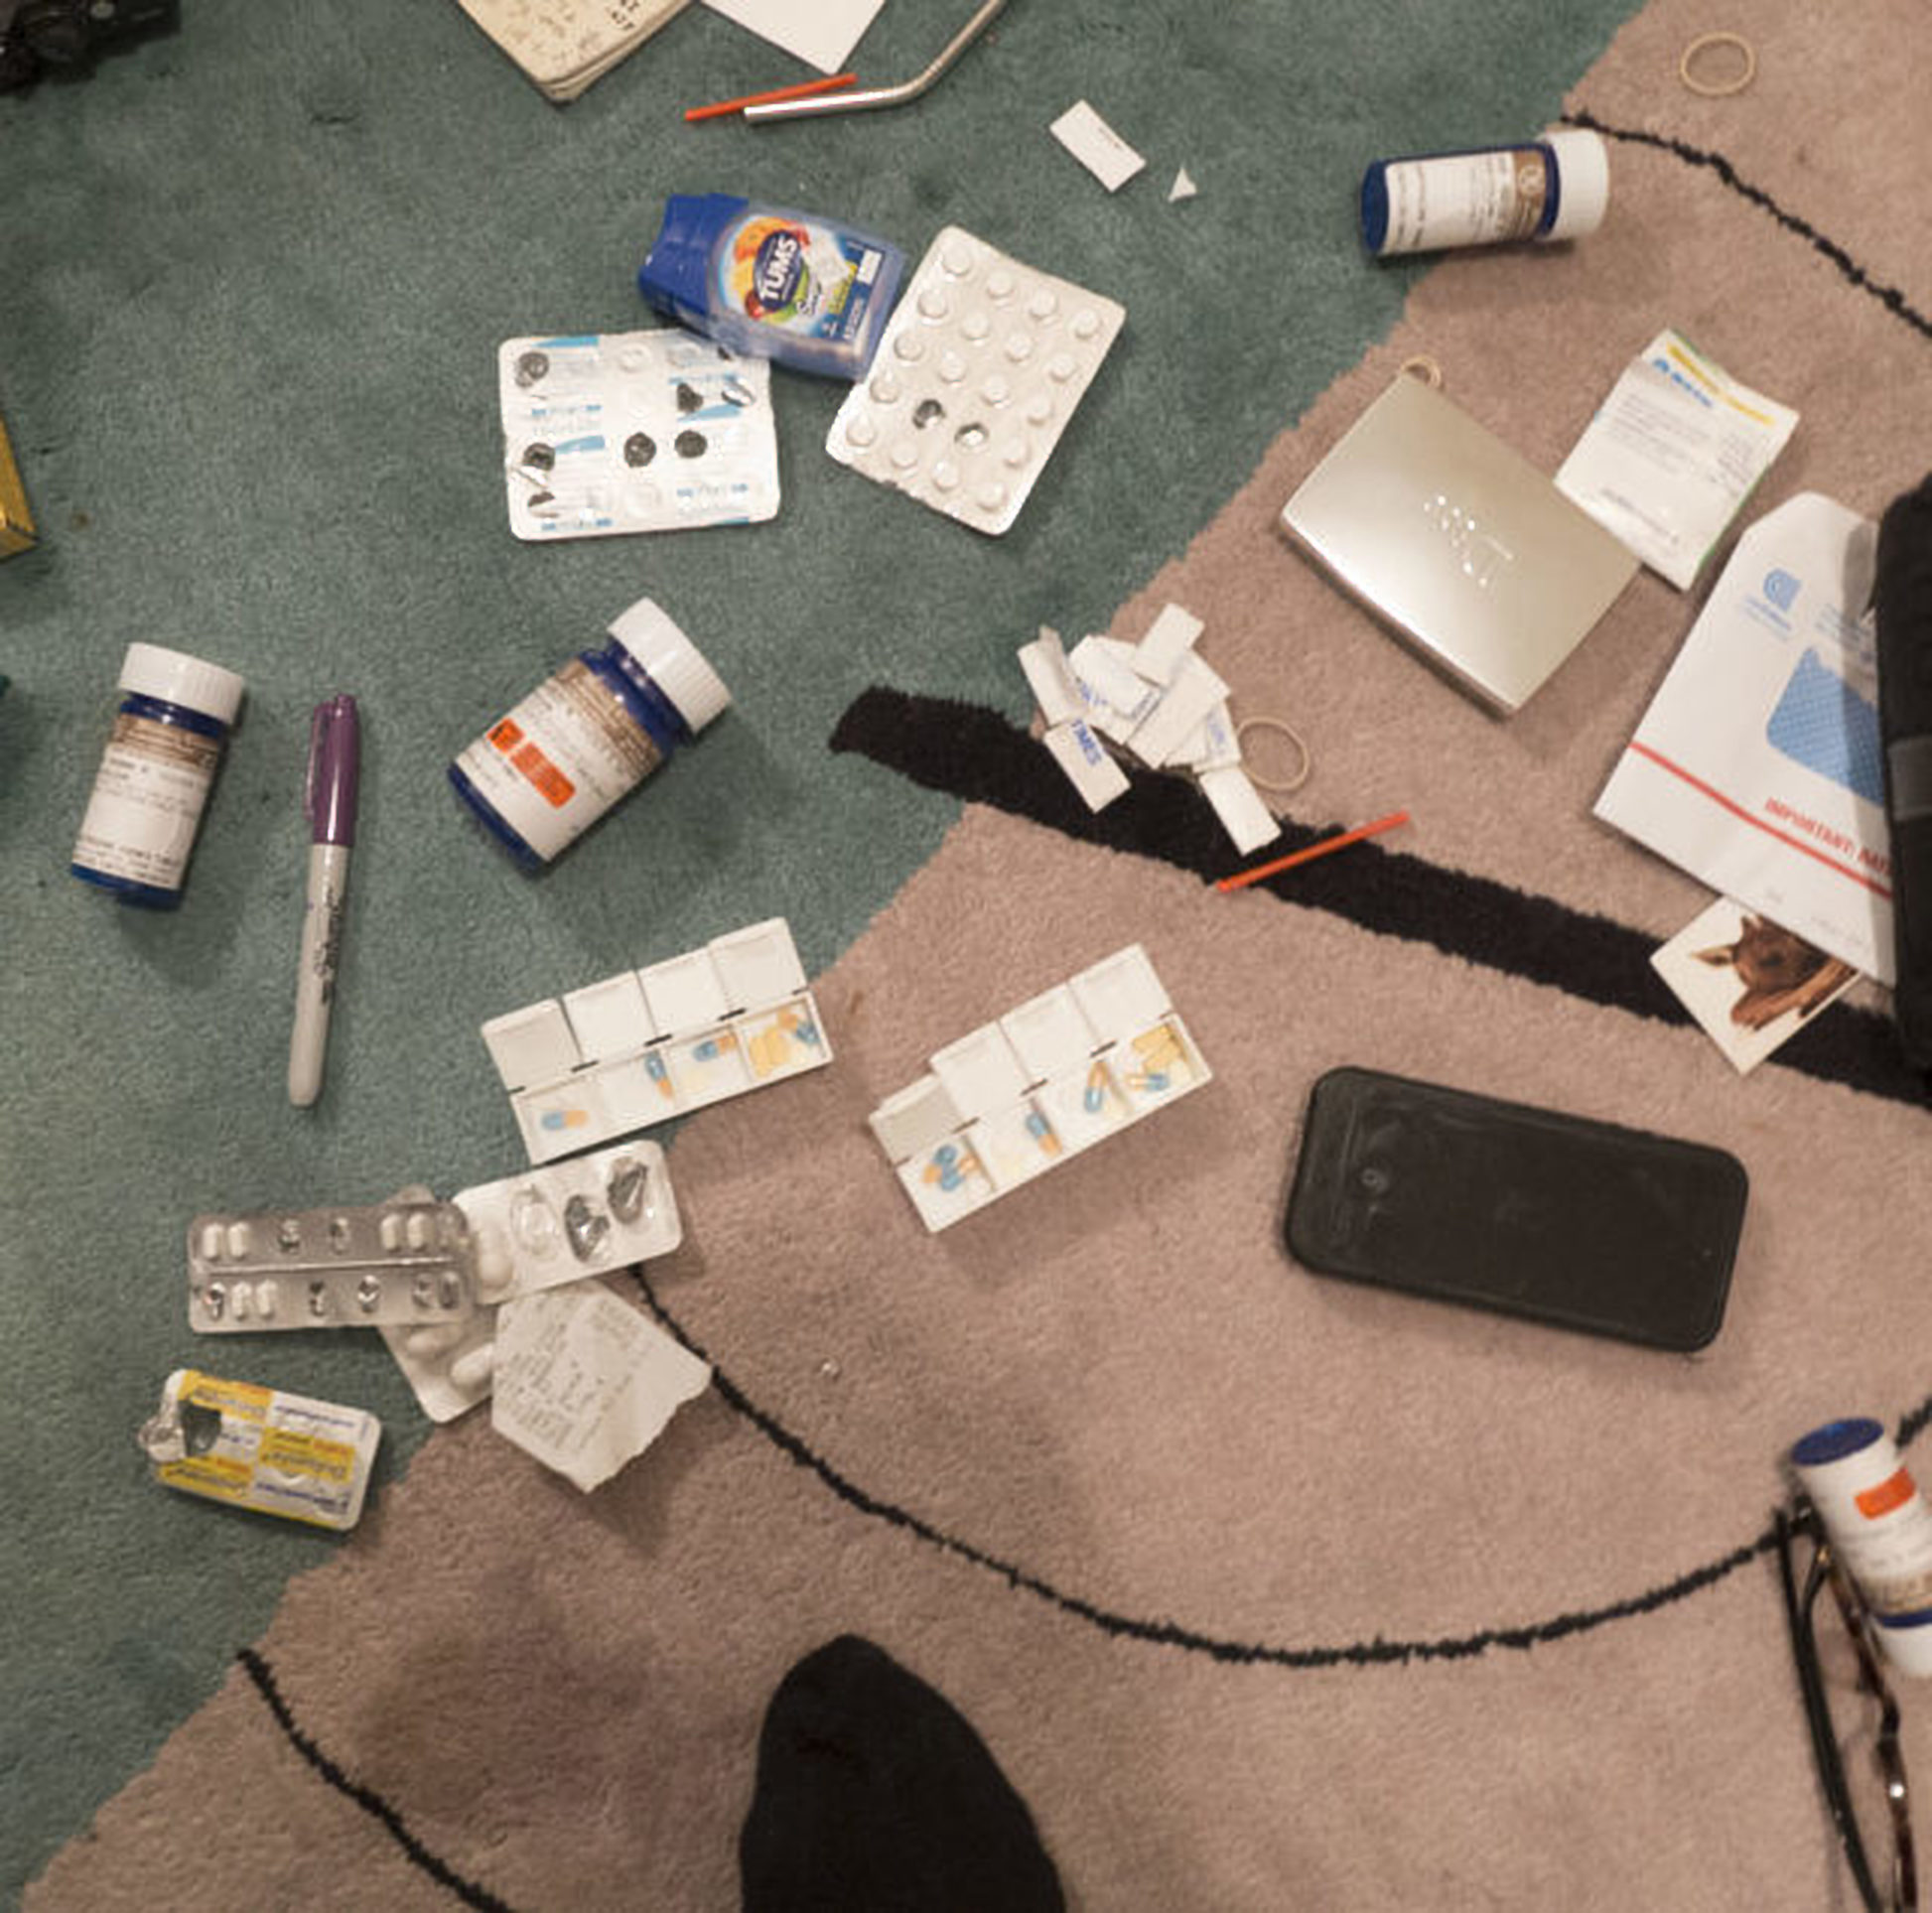 Aperture Drugs On The Rug. New York City, Usa by Nan Goldin